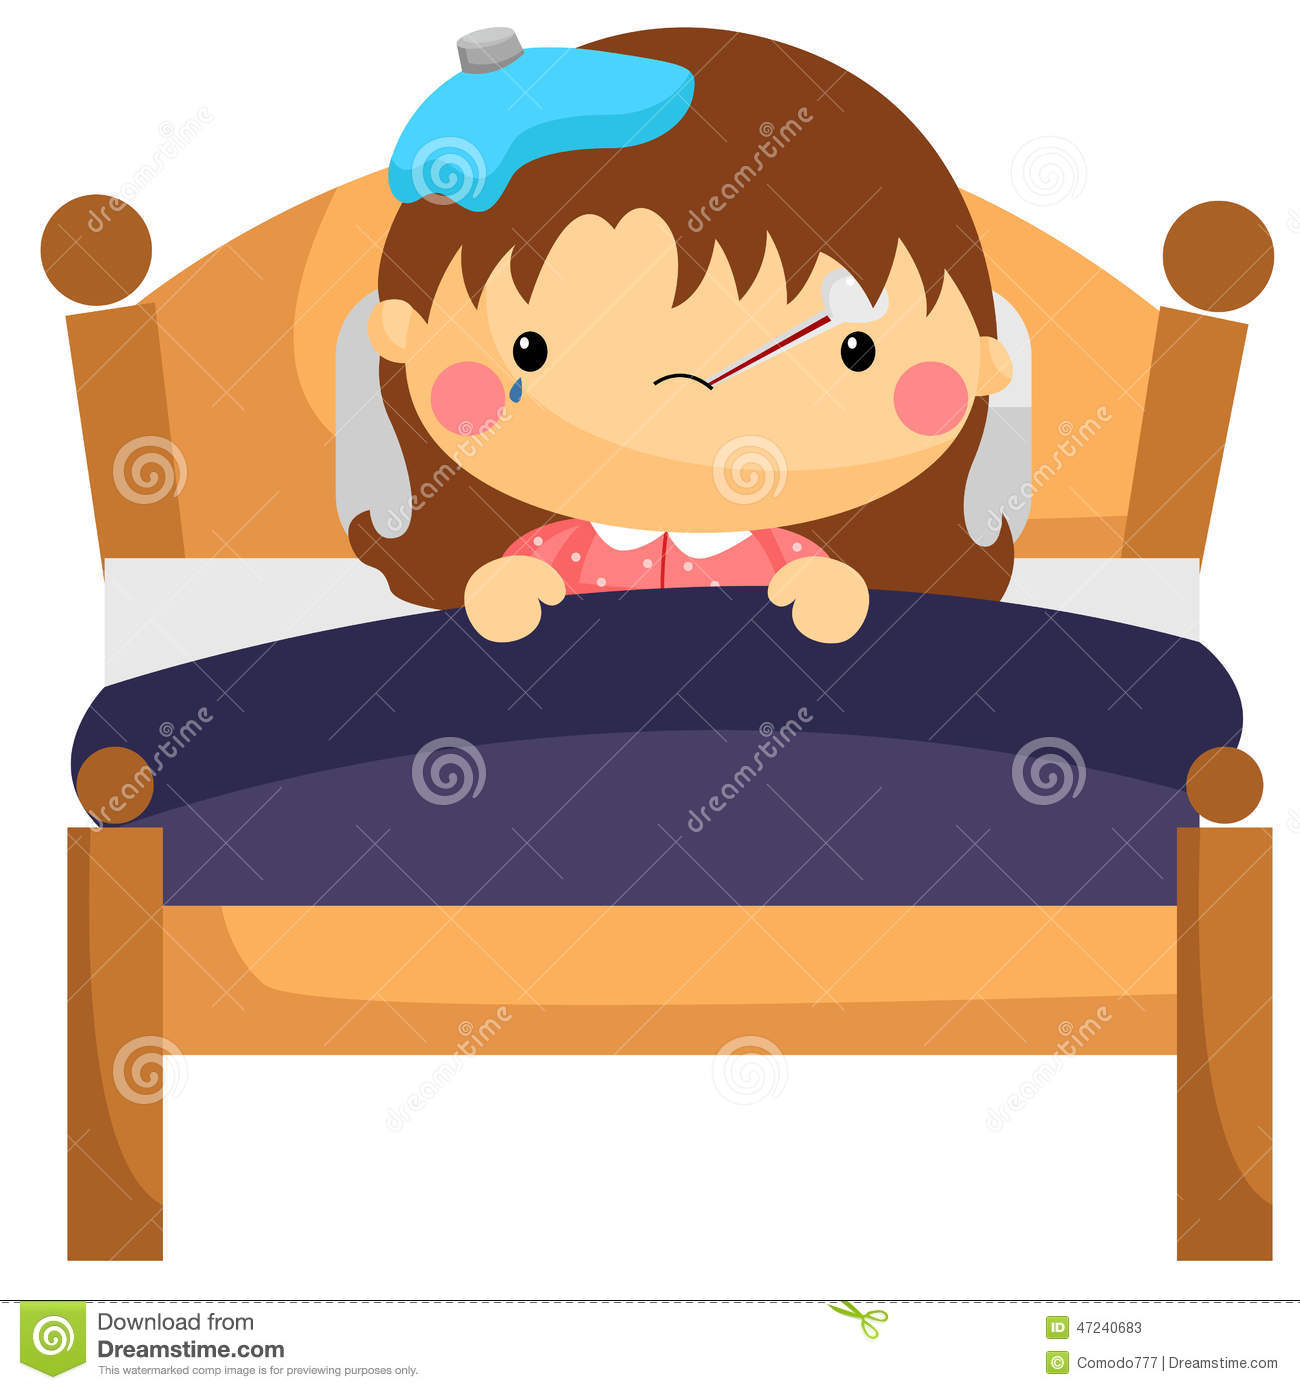 Girl sick in bed clipart.